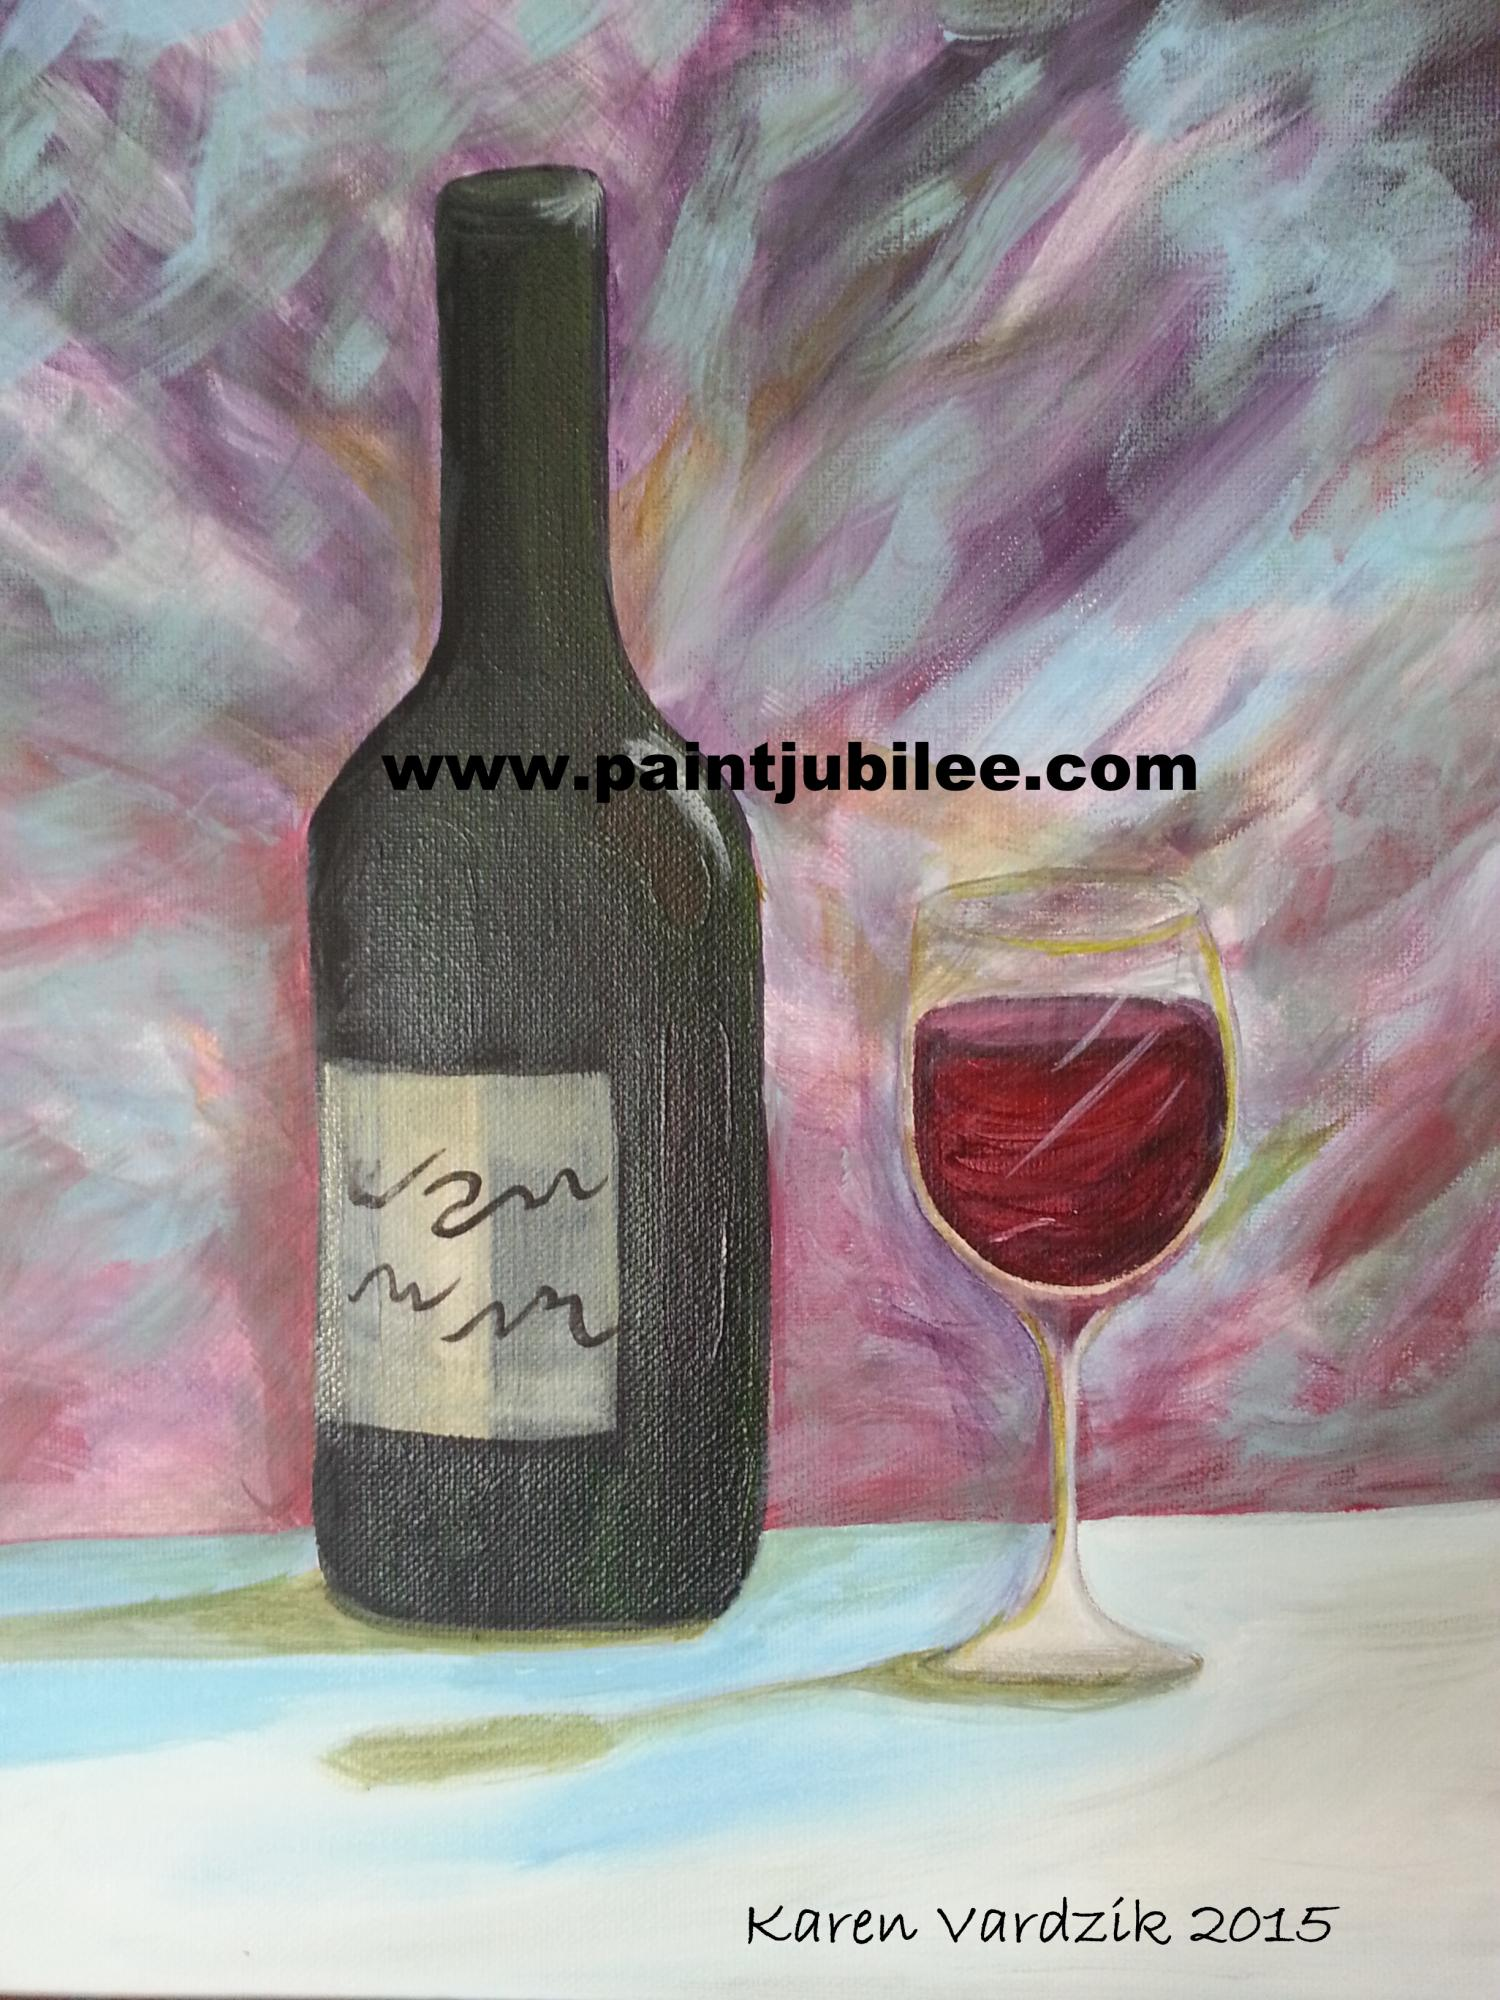 wine_bottle_and_glass52191.jpg